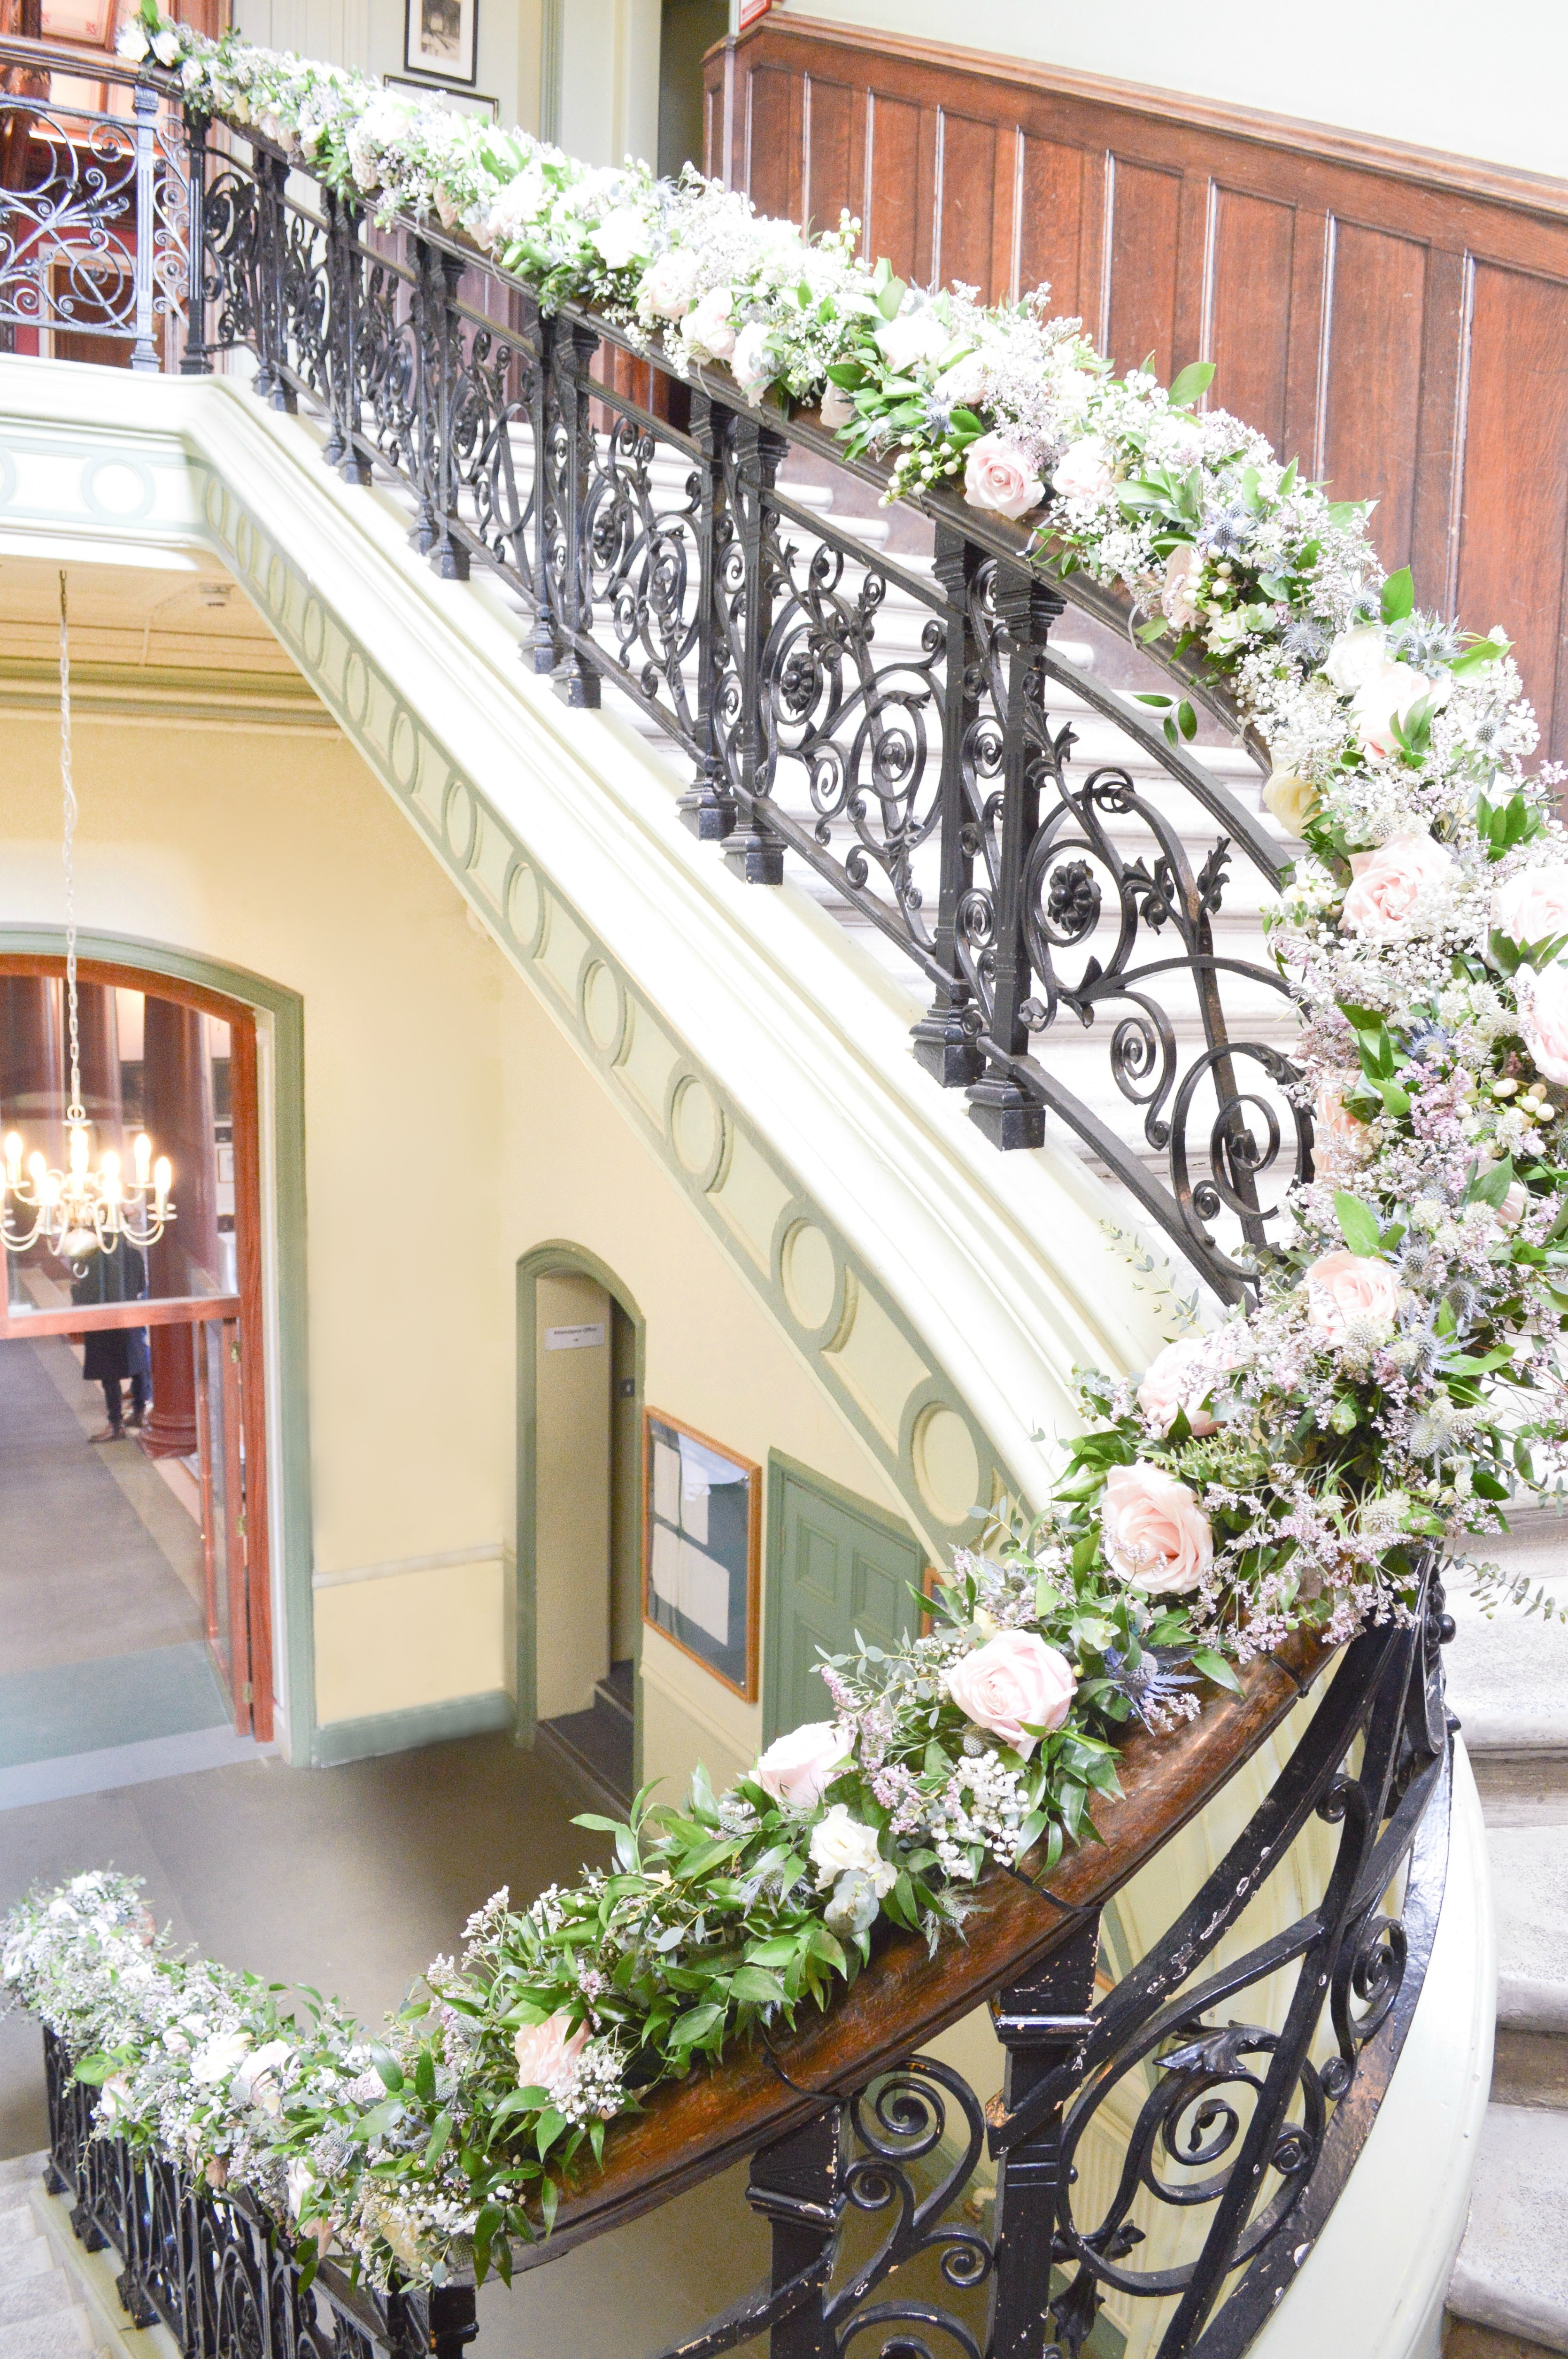 Natural garden rustic style spring pastel pink blue lilac staircase flowers Dulwich College Wedding Cherie Kelly flowers London